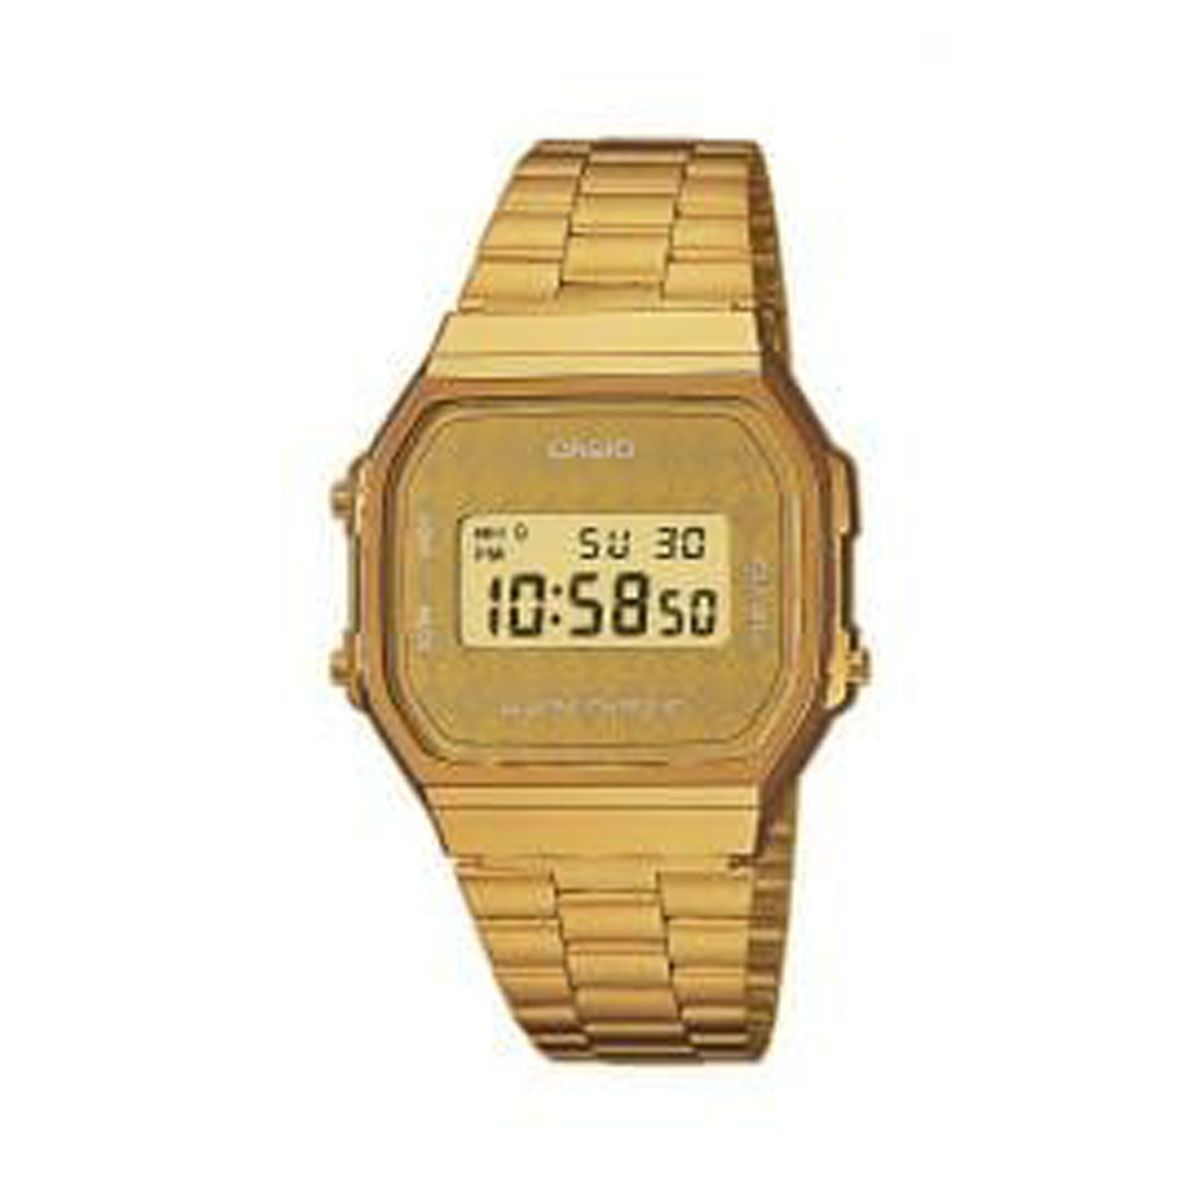 montre casio or homme